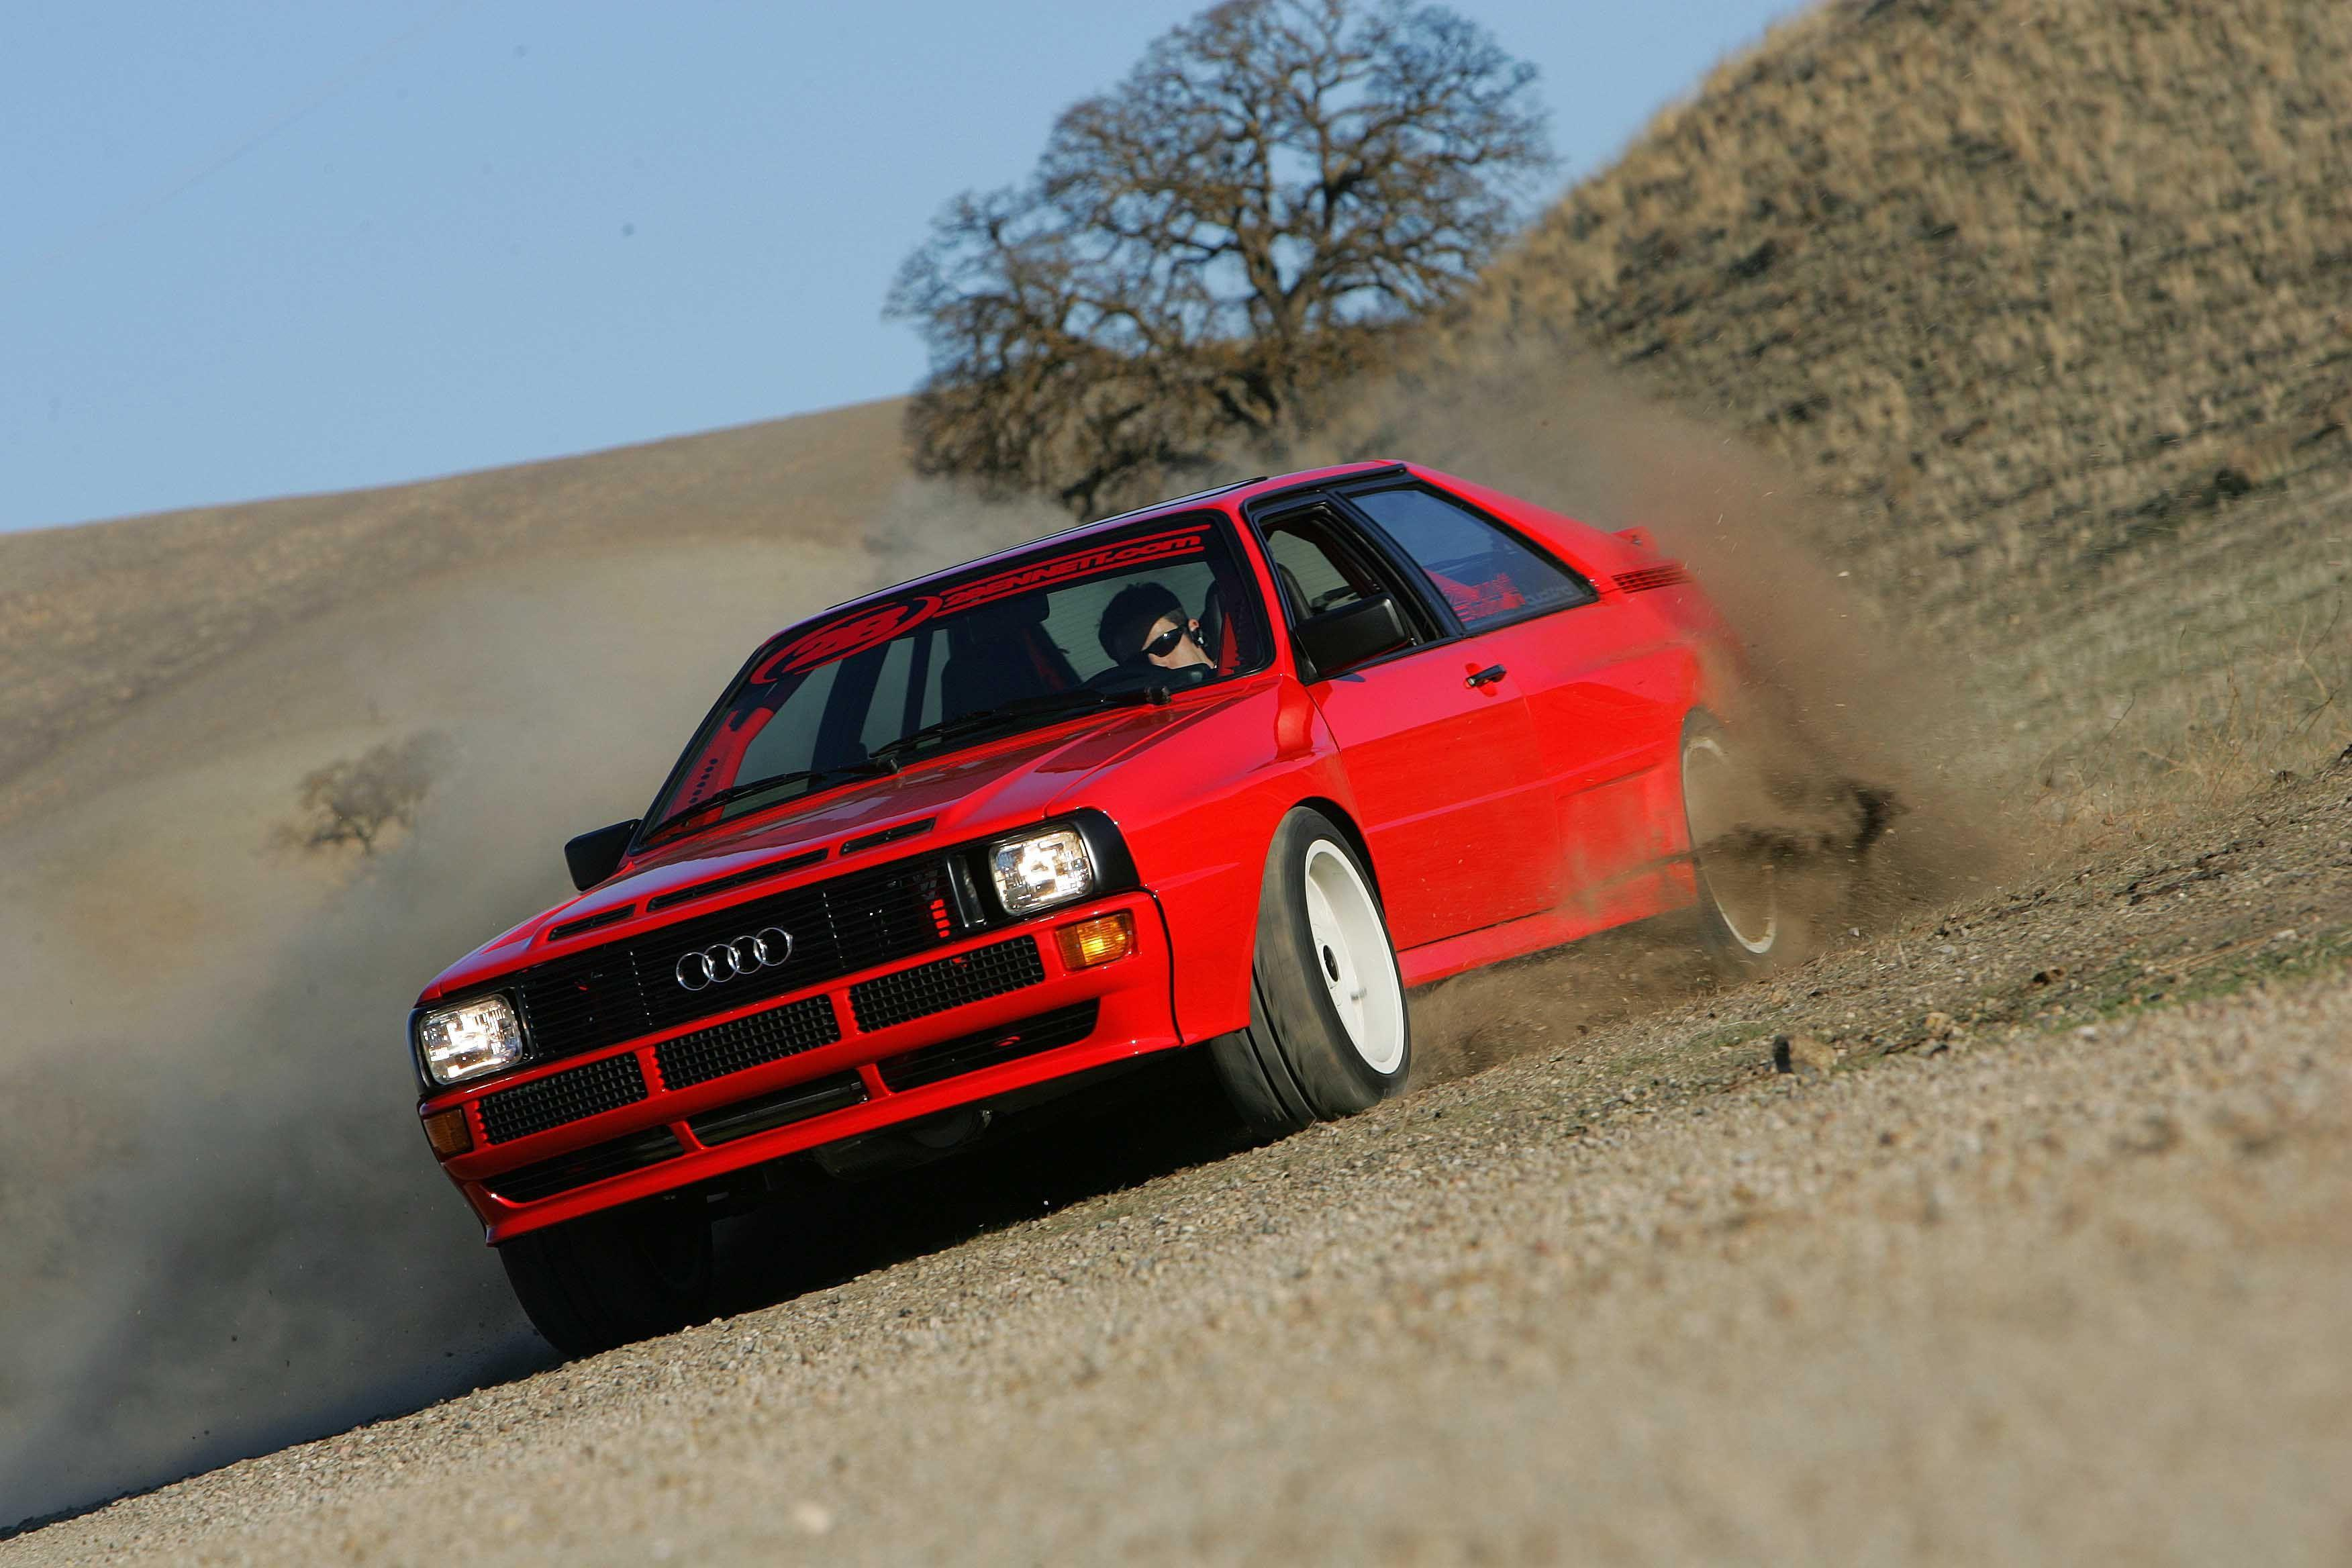 The design of the Audi 80 wallpapers and image